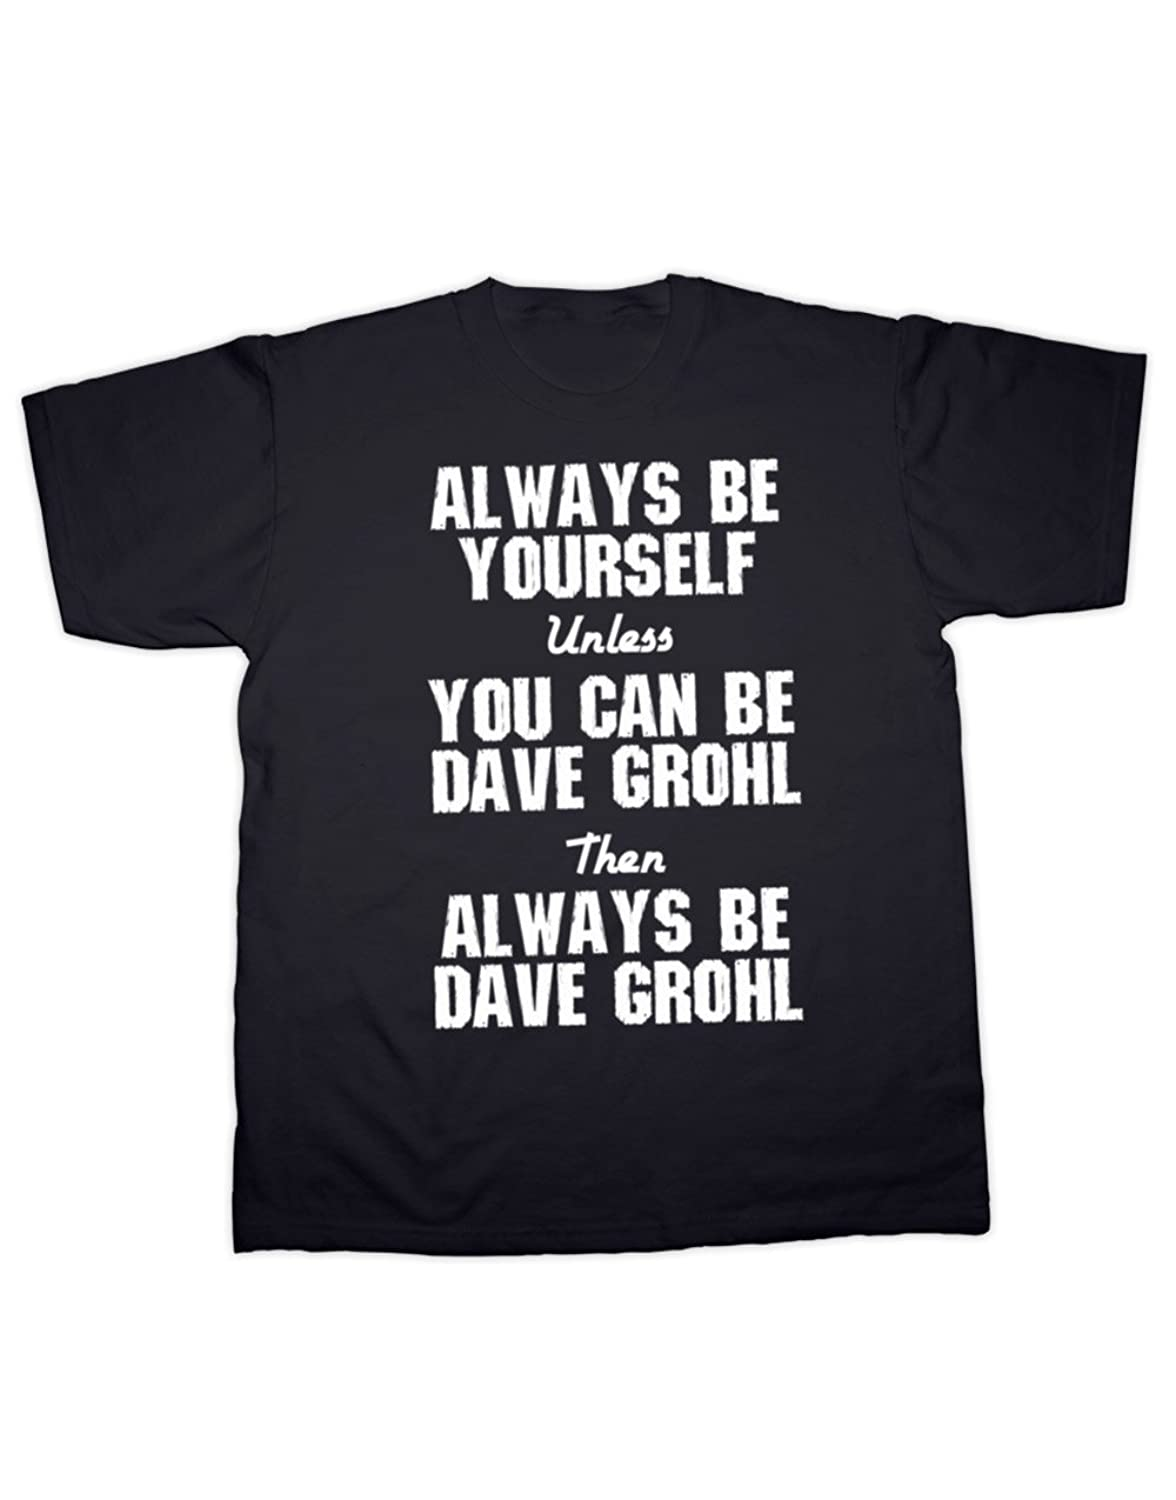 Sherbet Dip Always be Grohl T-Shirt. All Sizes (Small - 5XL)